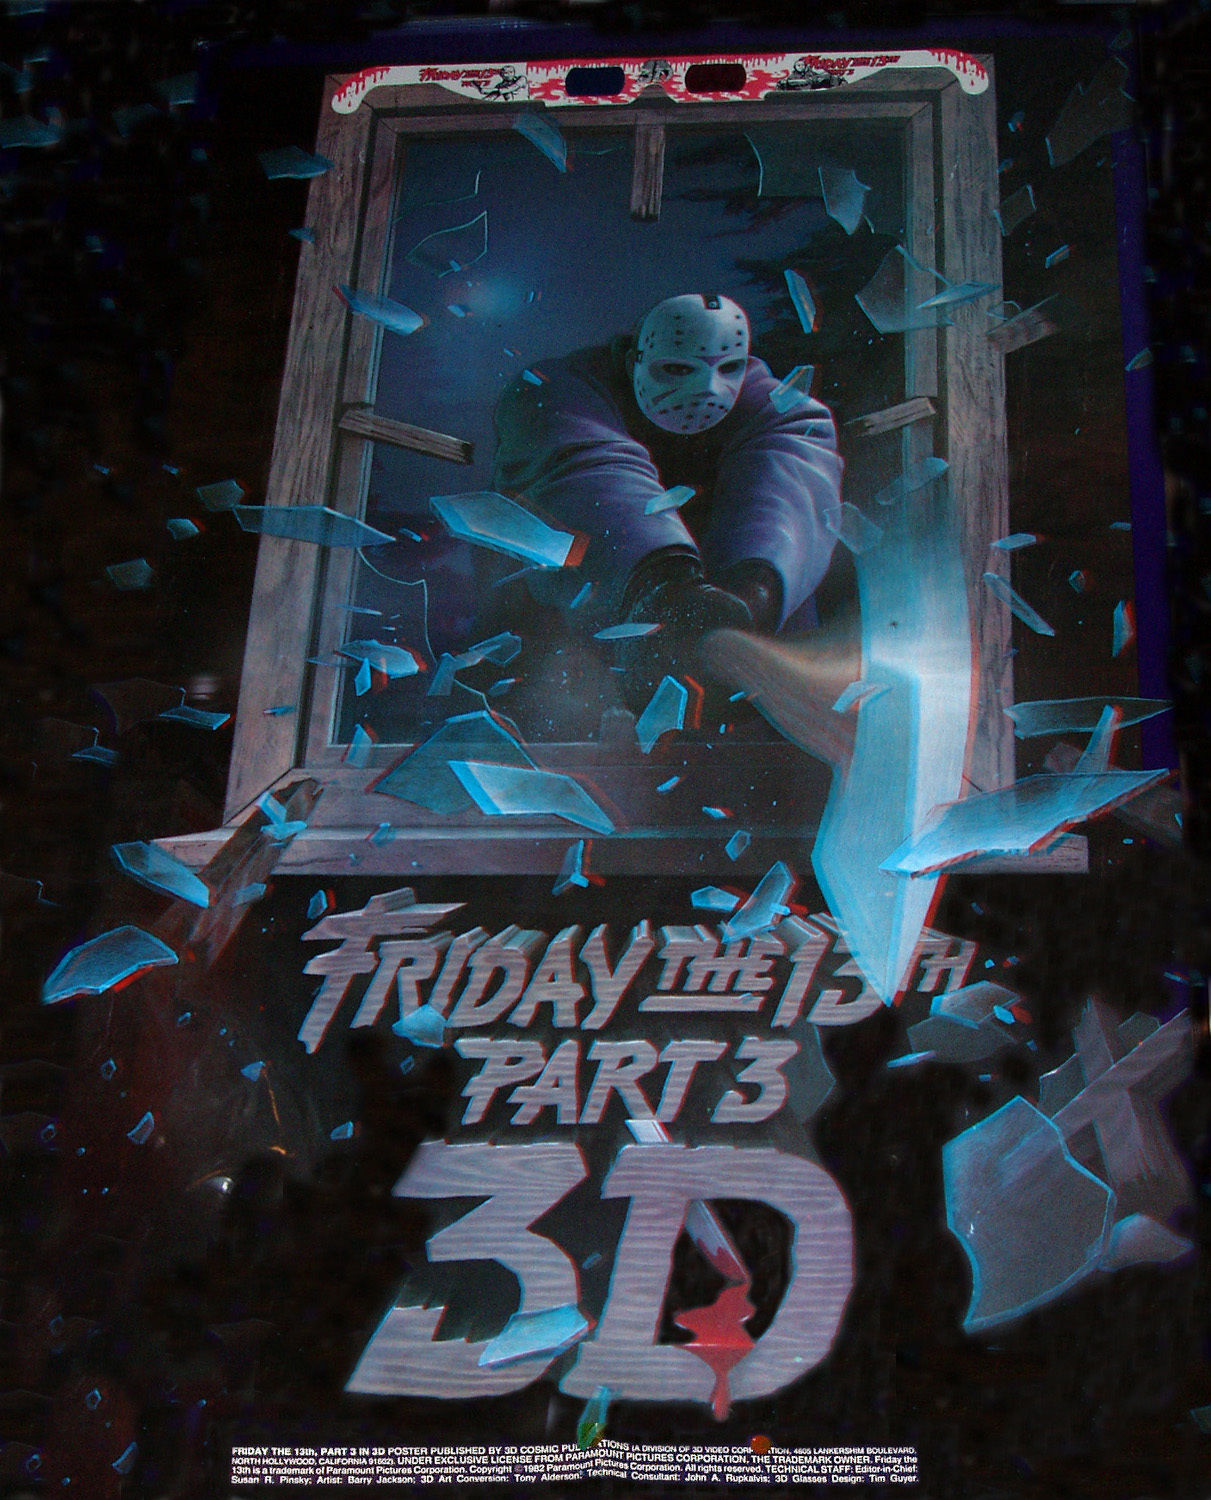 3 part poster design - You Can Purchase An Original Friday The 13th Part 3 Anaglyphic 3 D Poster